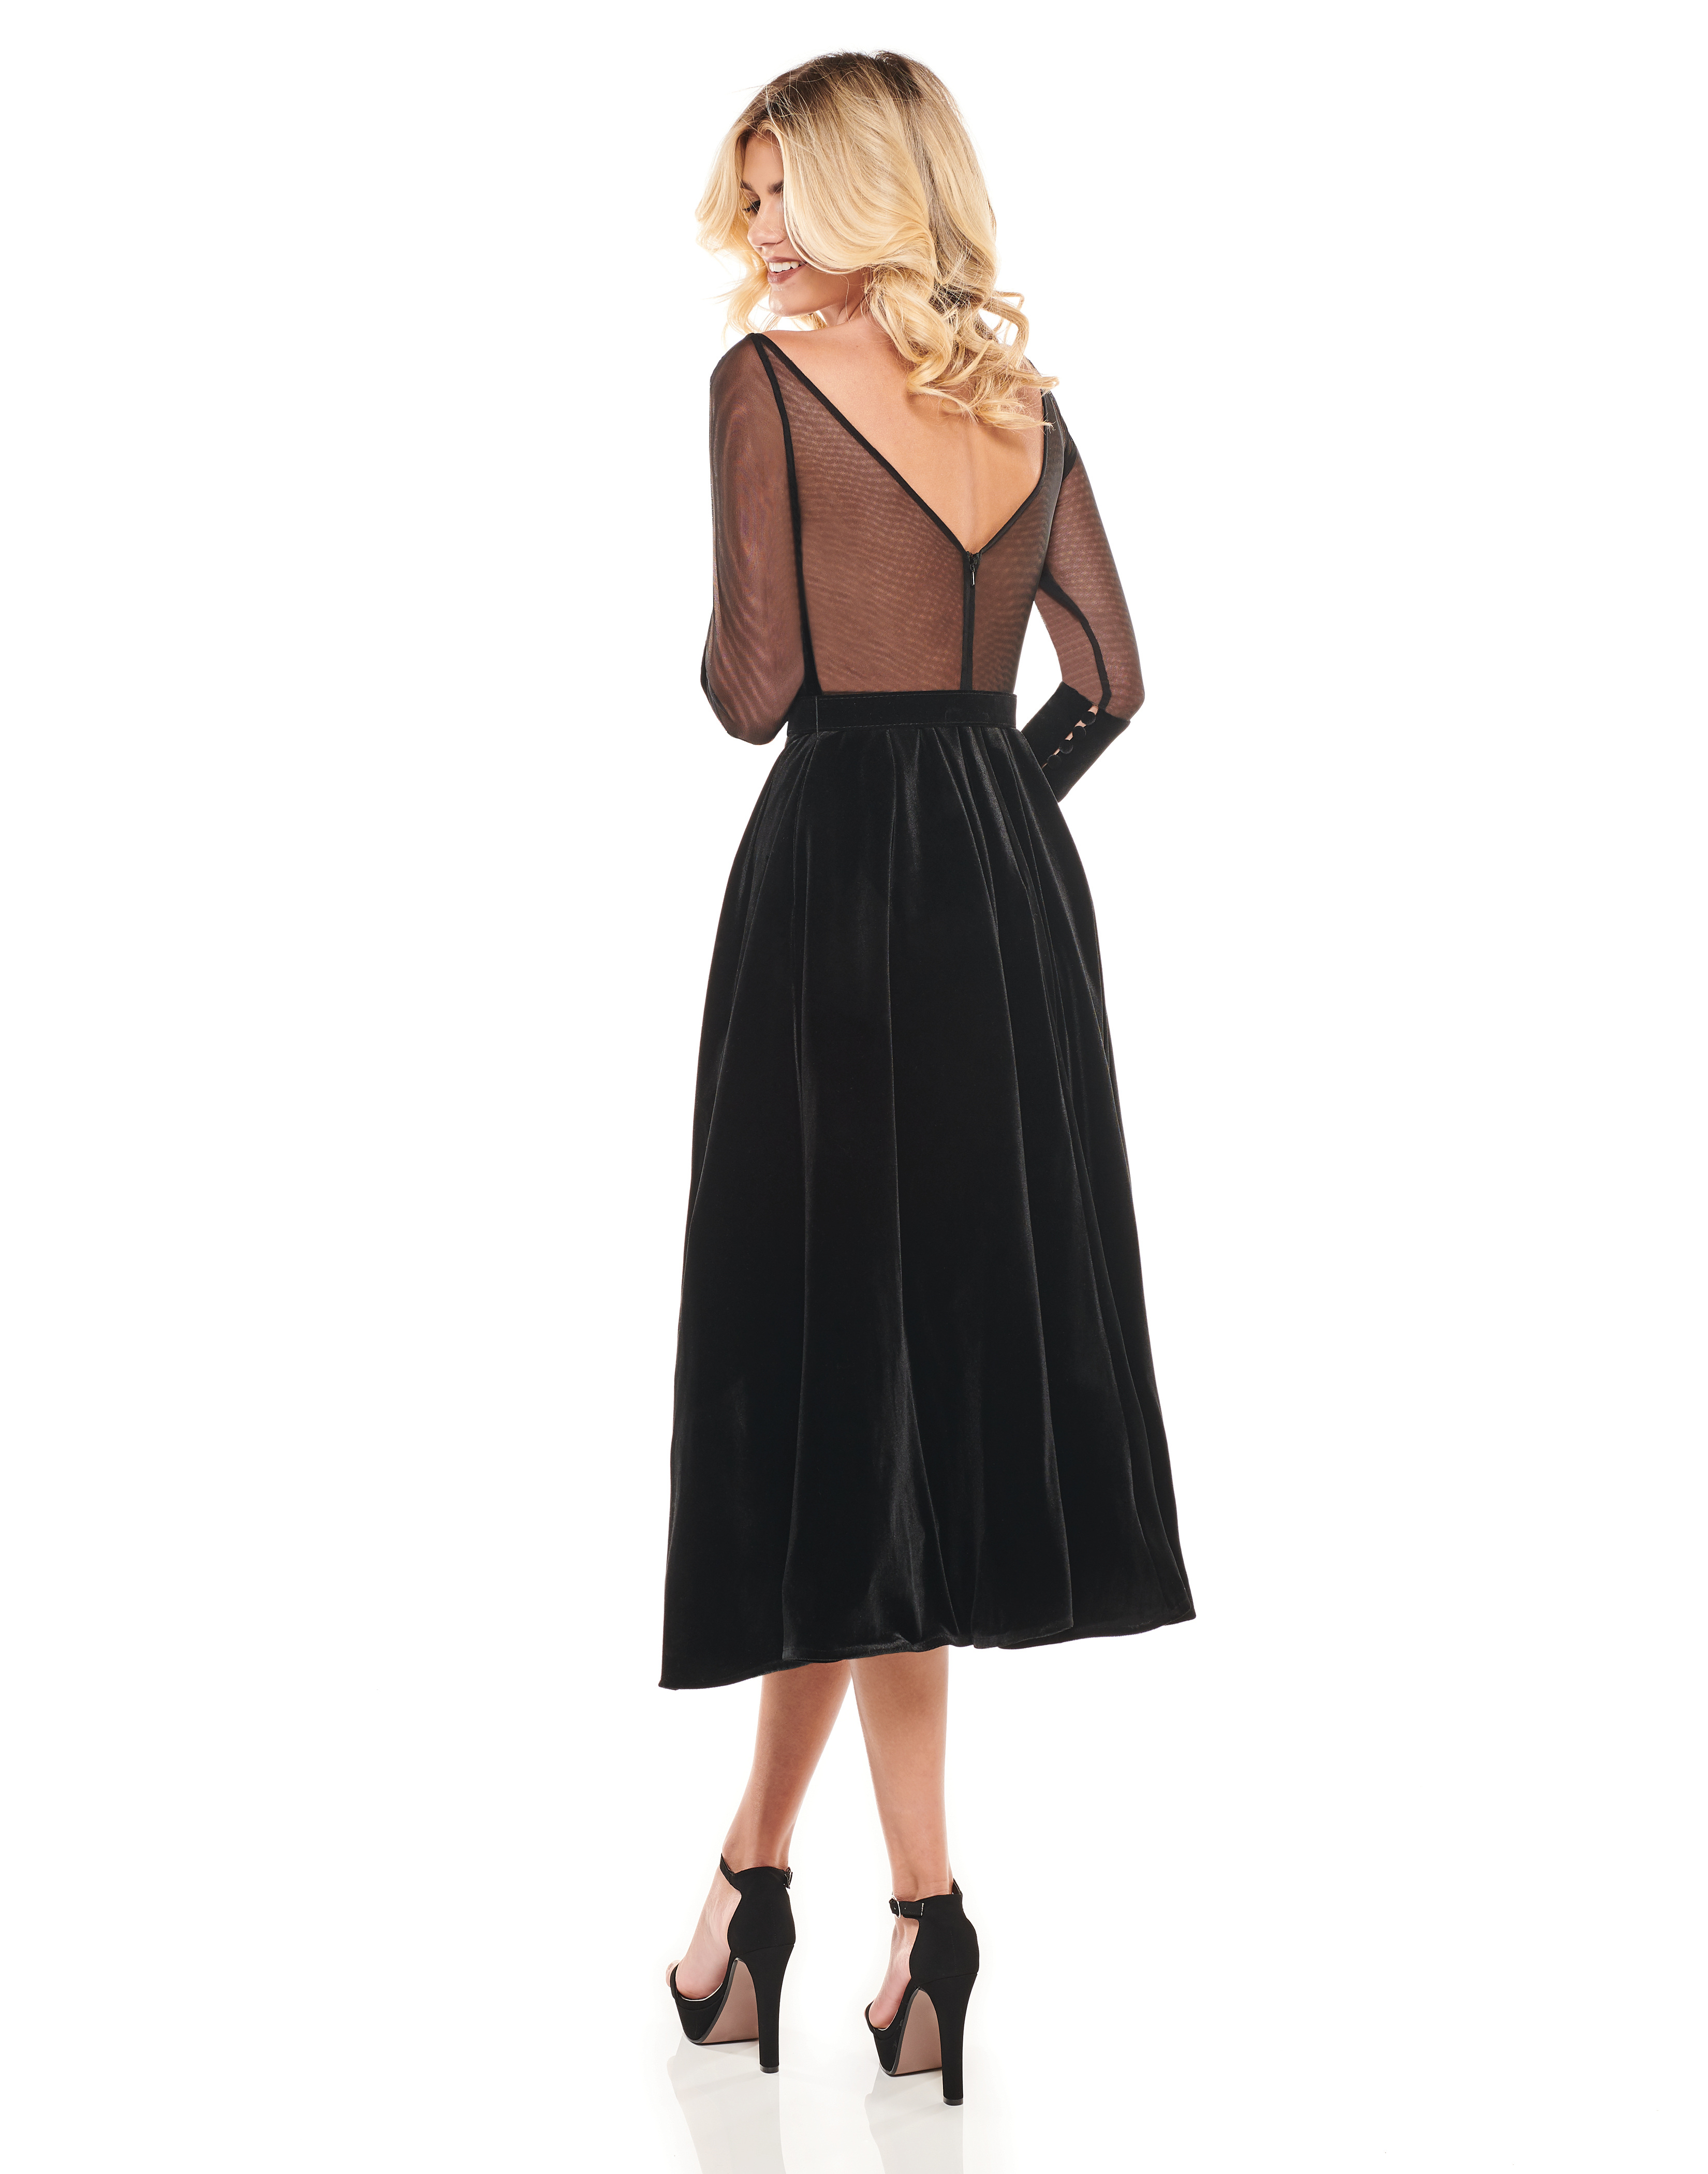 Sweetheart A-Line Cocktail Dresses in Black Color